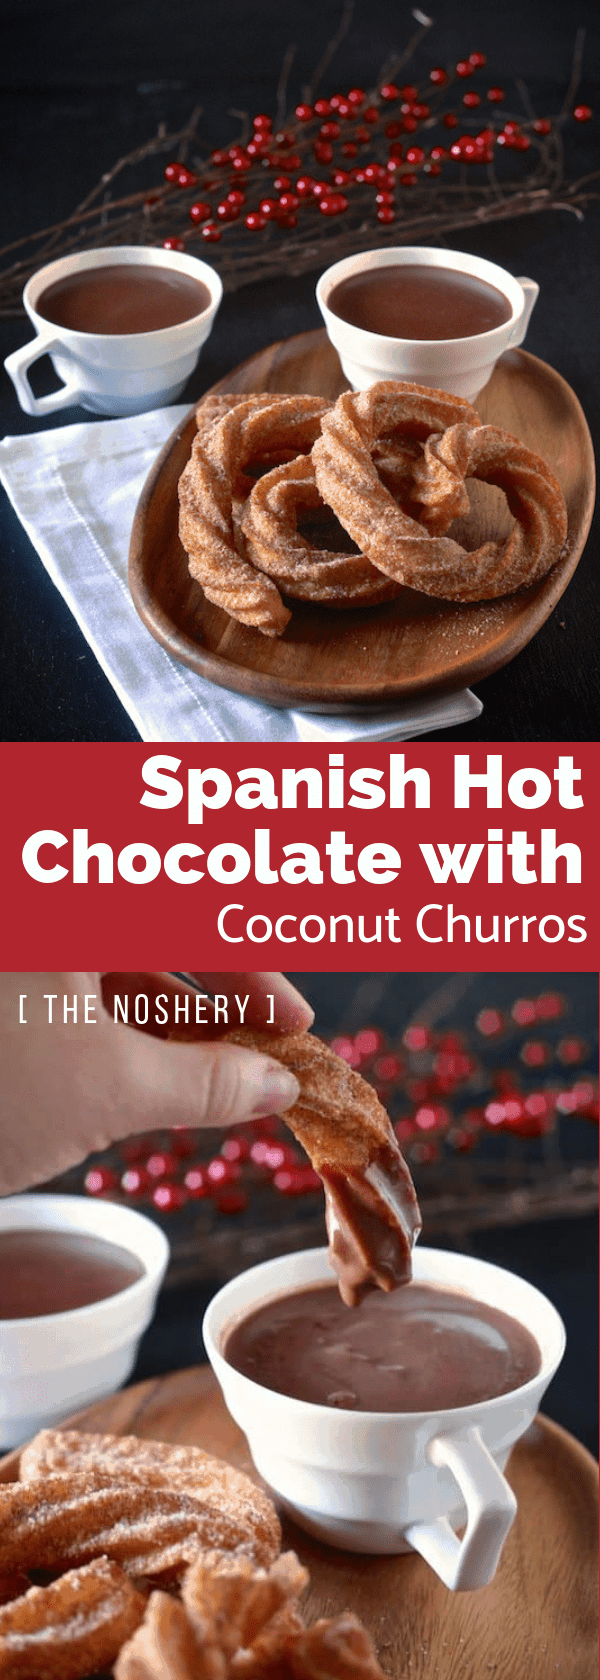 Spanish Hot Chocolate with Coconut Churros | Hot chocolate made with bittersweet chocolate served as a thick and creamy drink. It coats your churros when it's dipped, but still thin enough to drink. | The Noshery